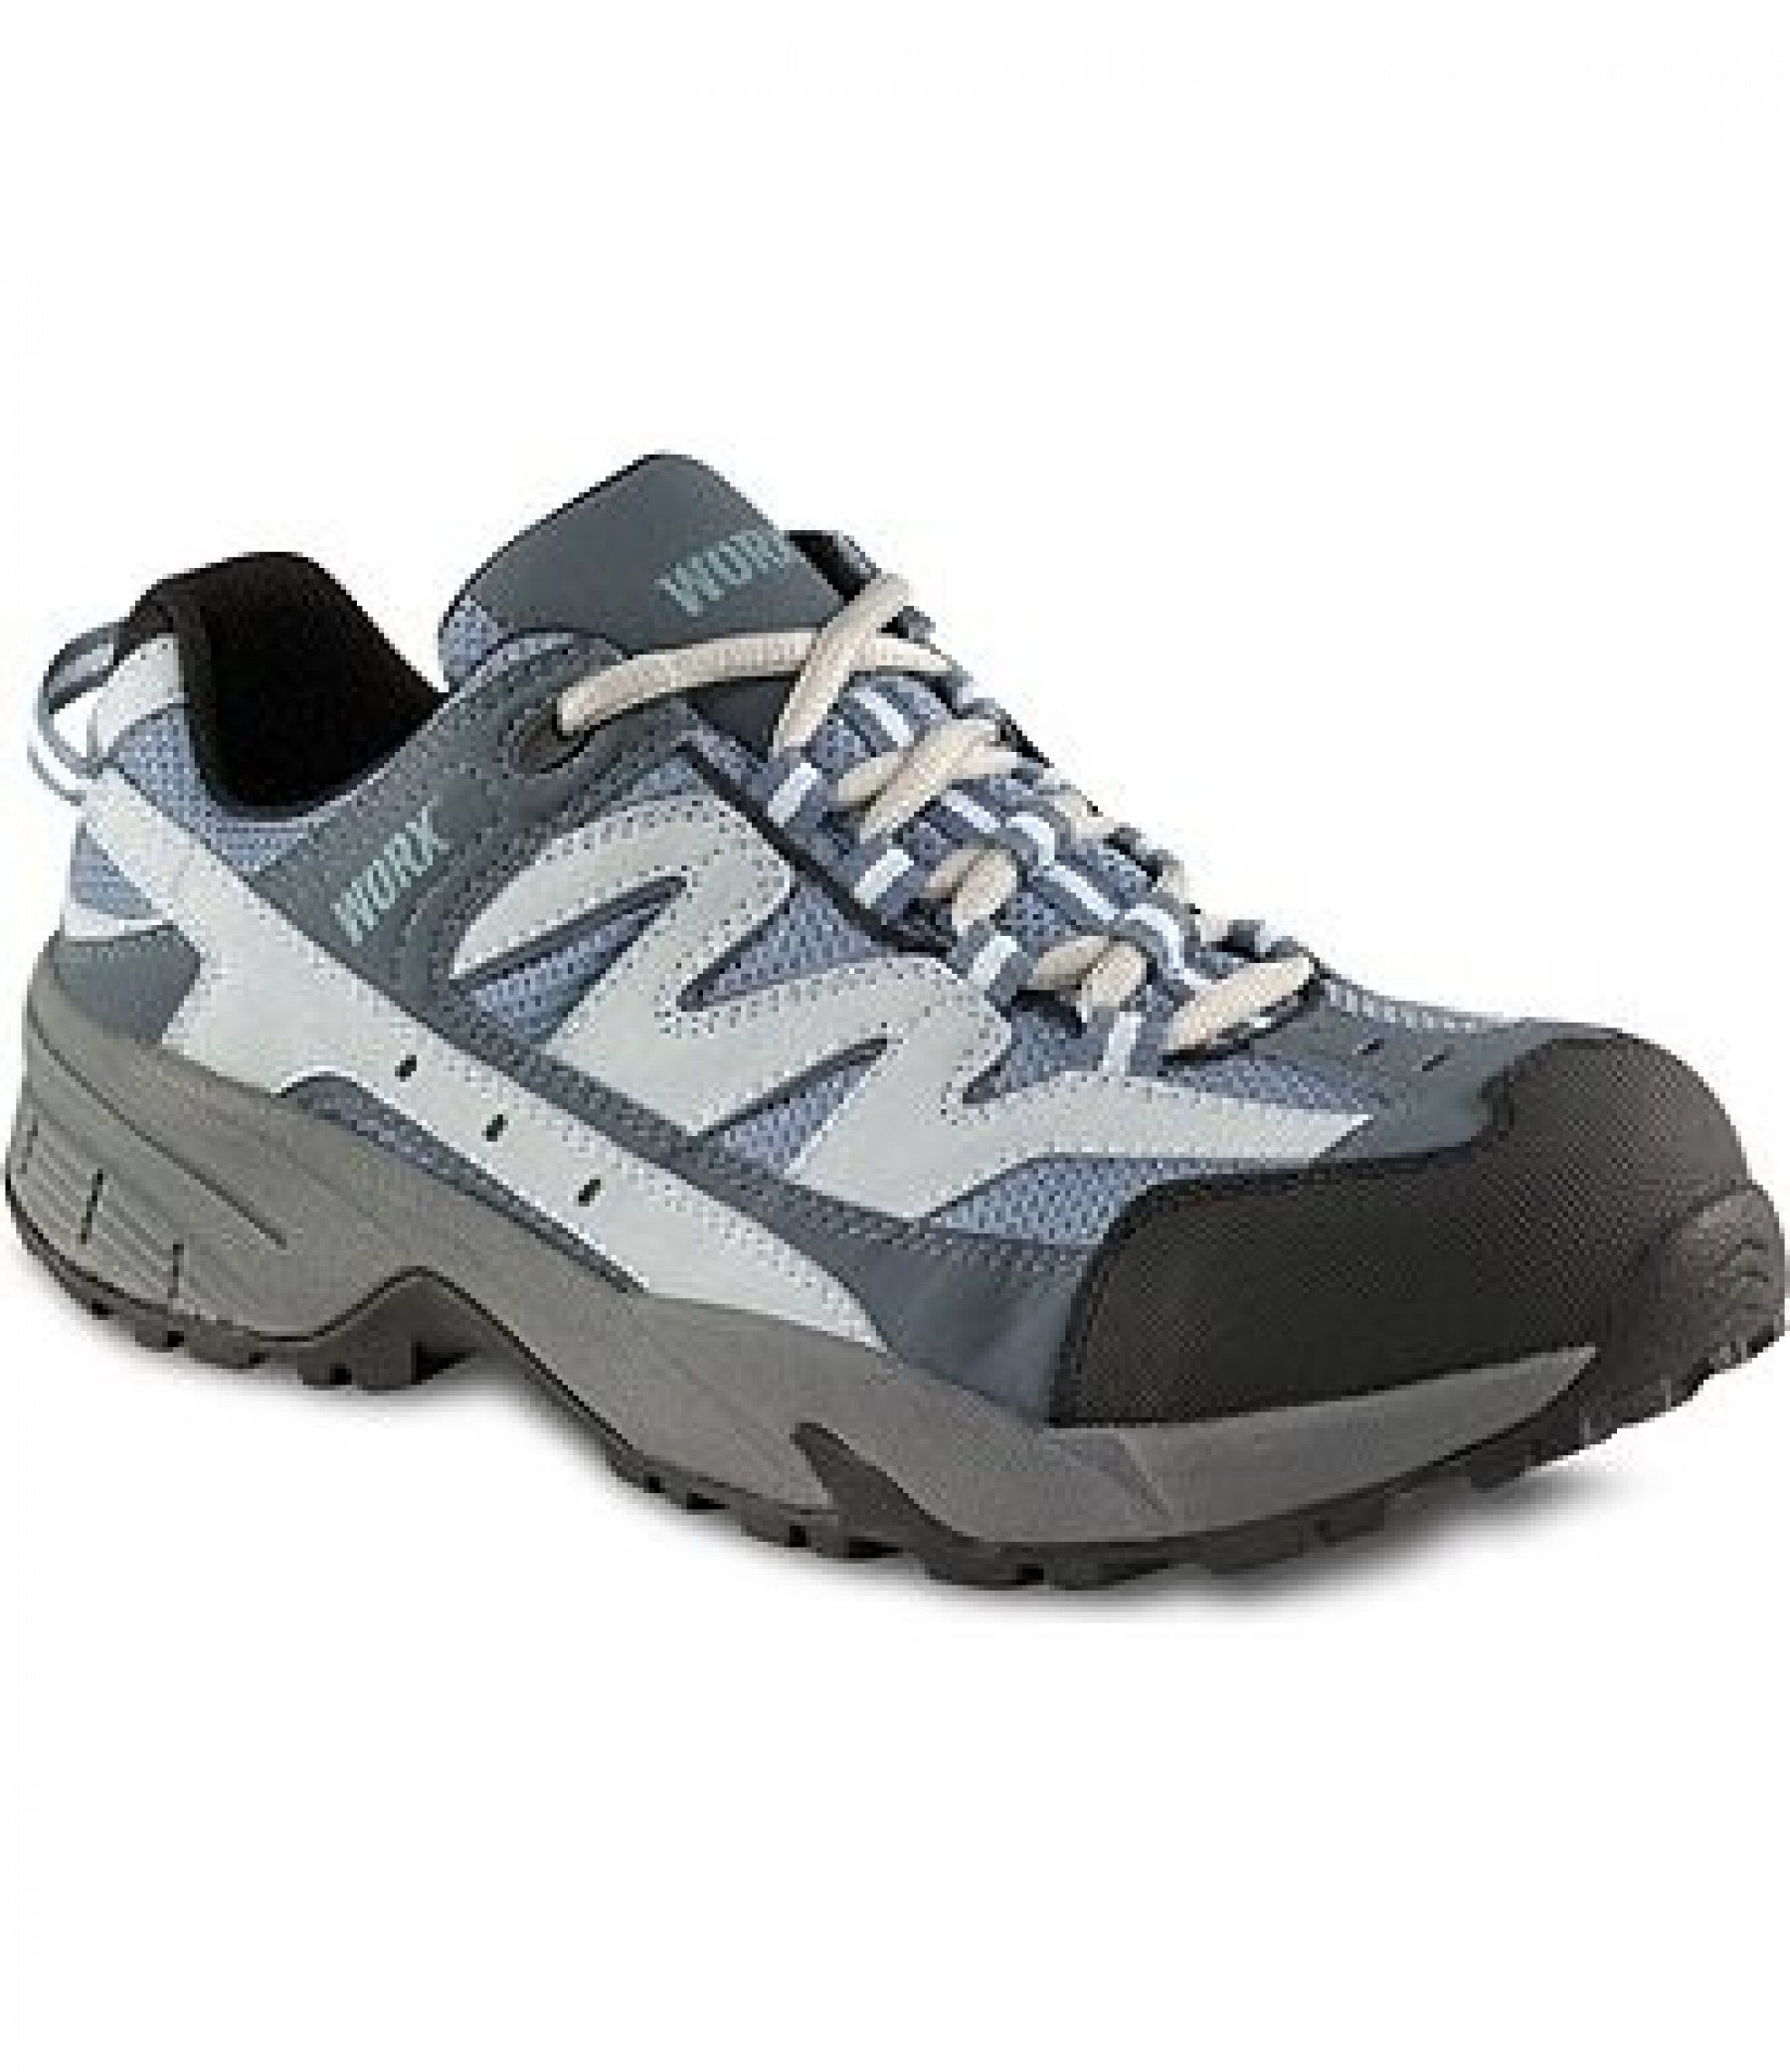 Worx Laced Safety Shoes Ladies Footwear